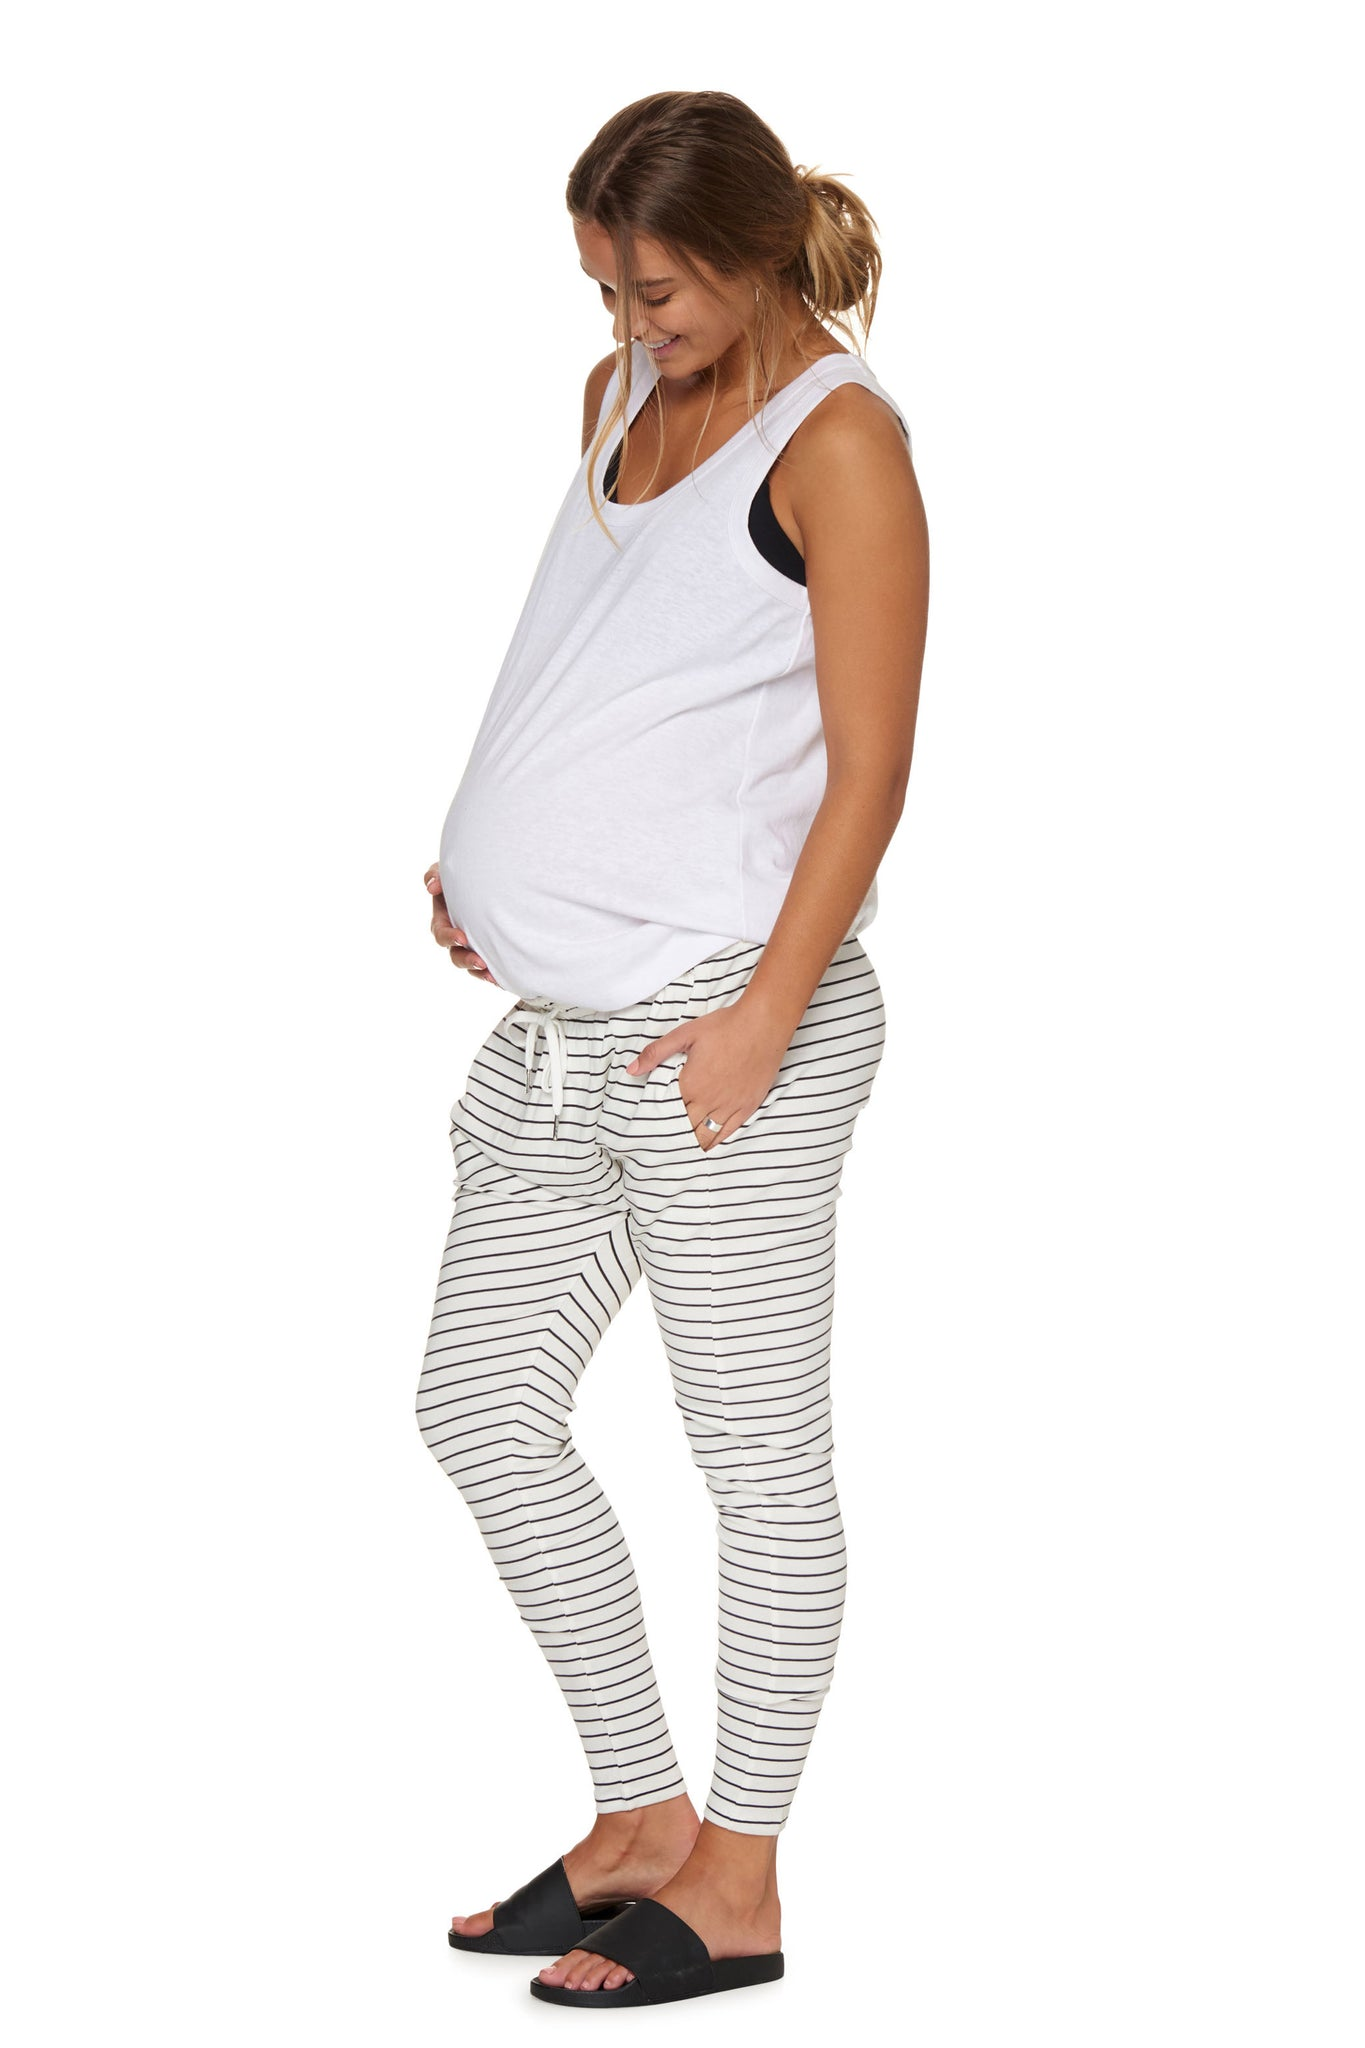 Maternity White Stripe Pant Image 2